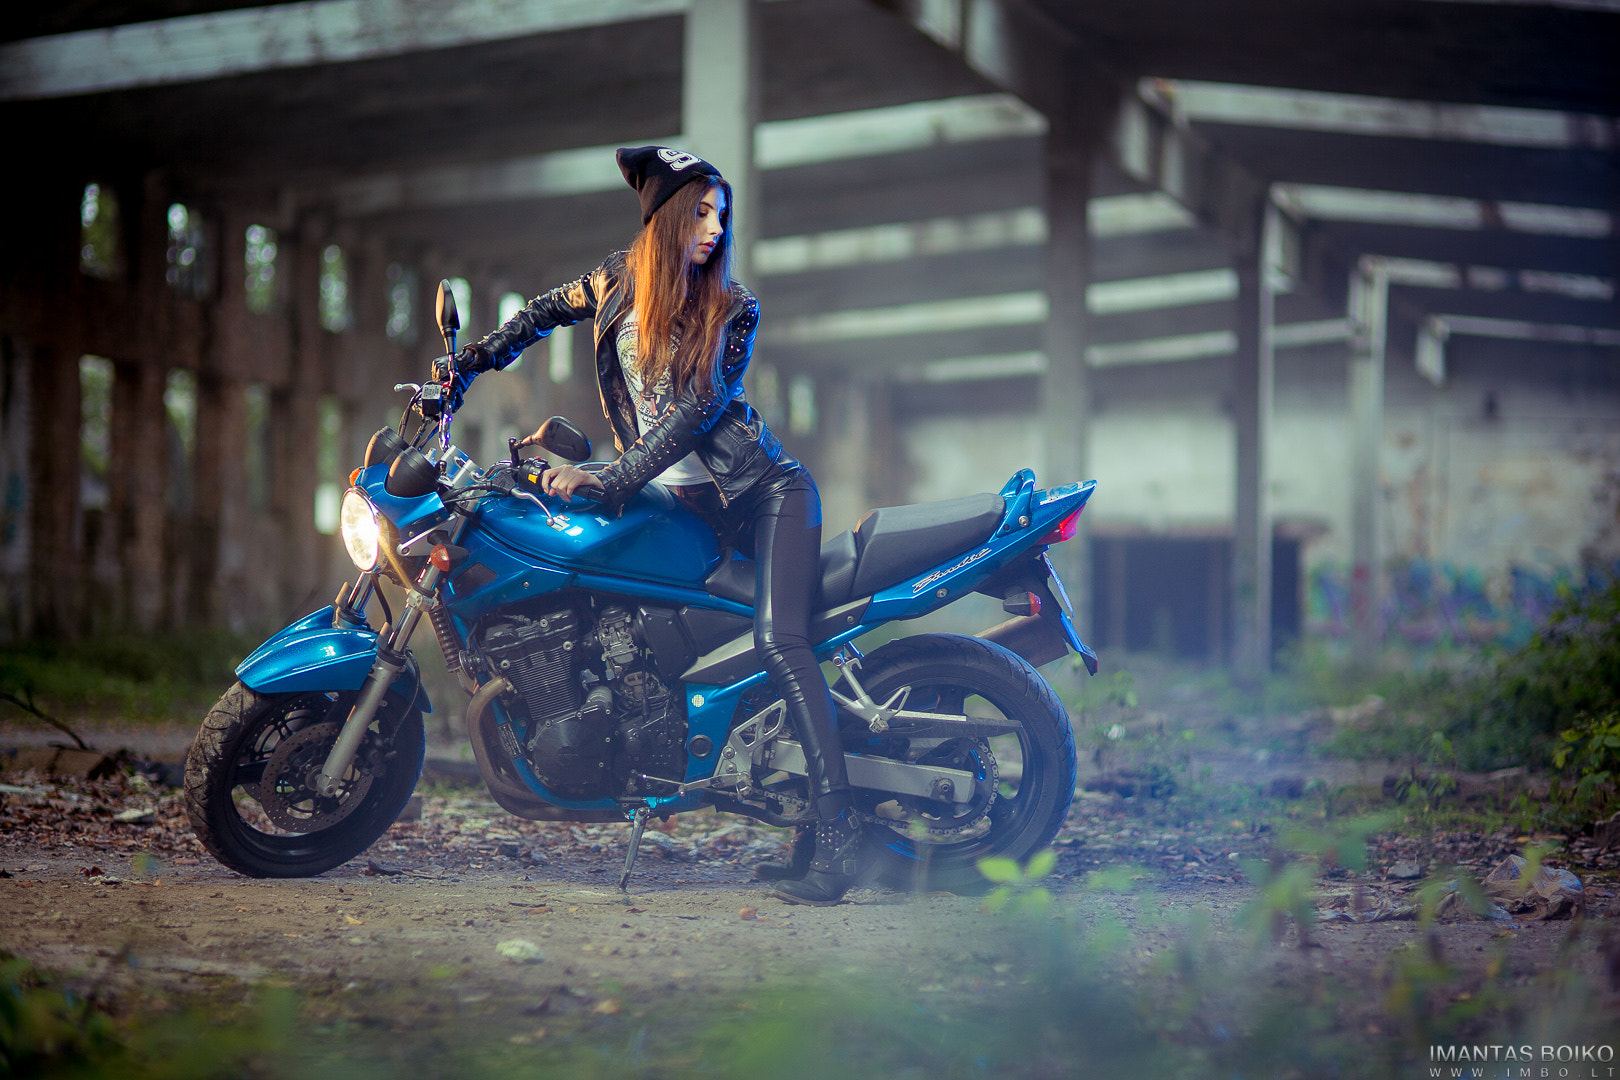 Photograph Moto by Imantas Boiko on 500px